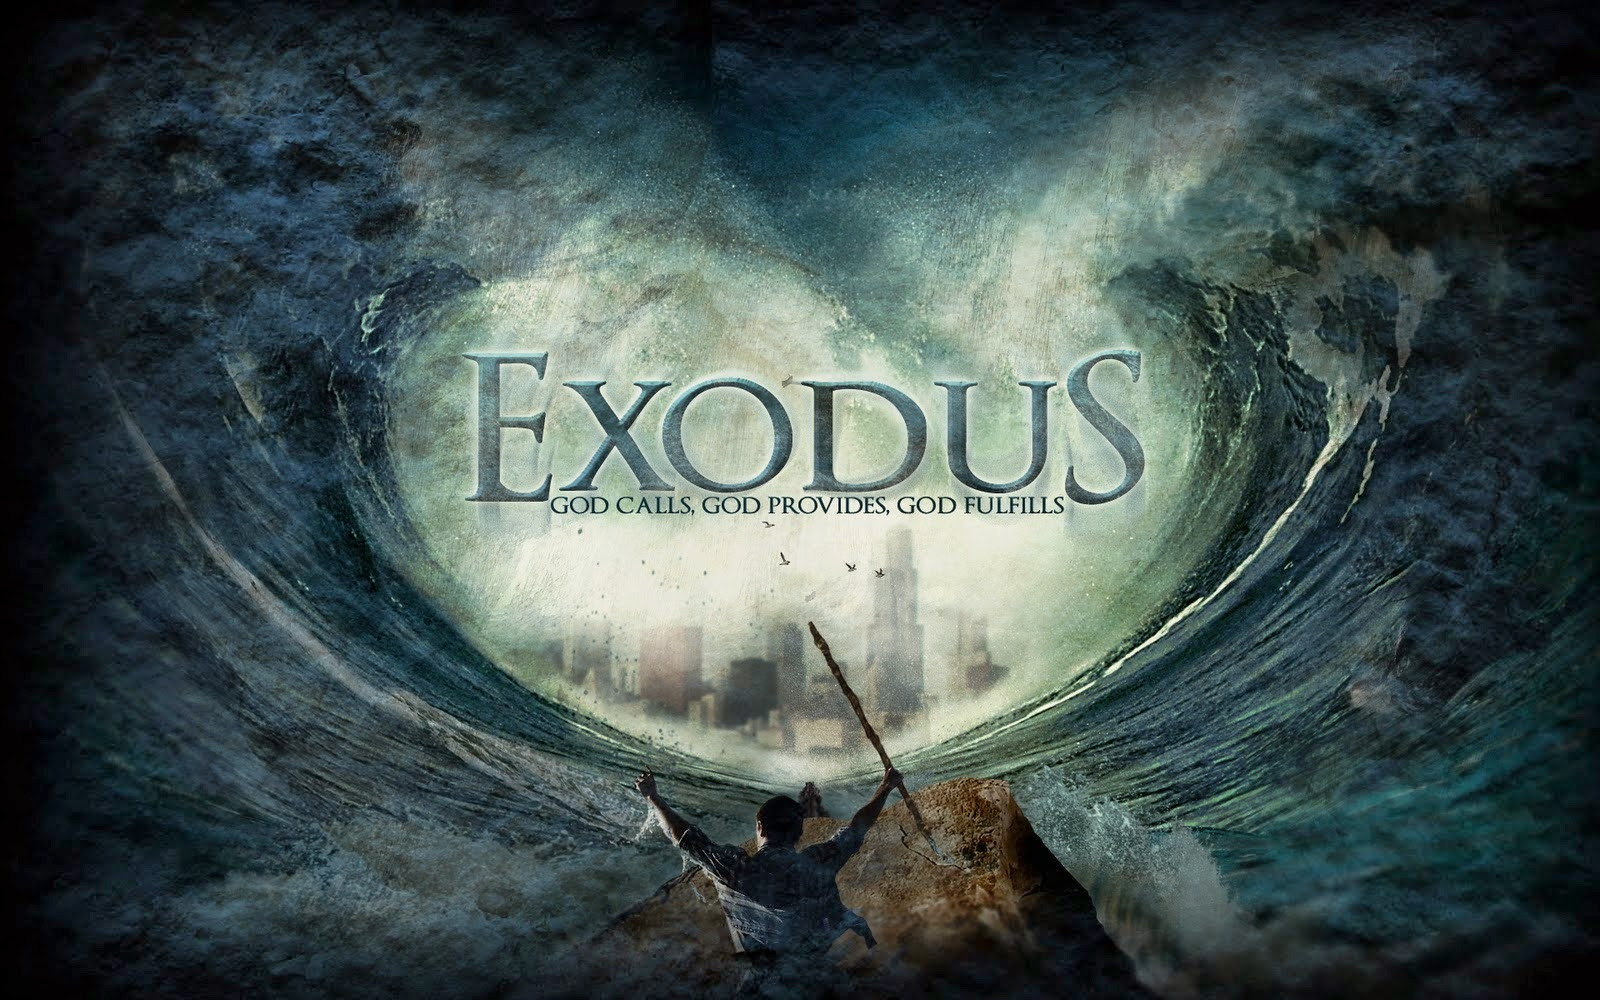 http://www.videobible.co/2014/04/the-book-of-exodus-40-chapters-in.html